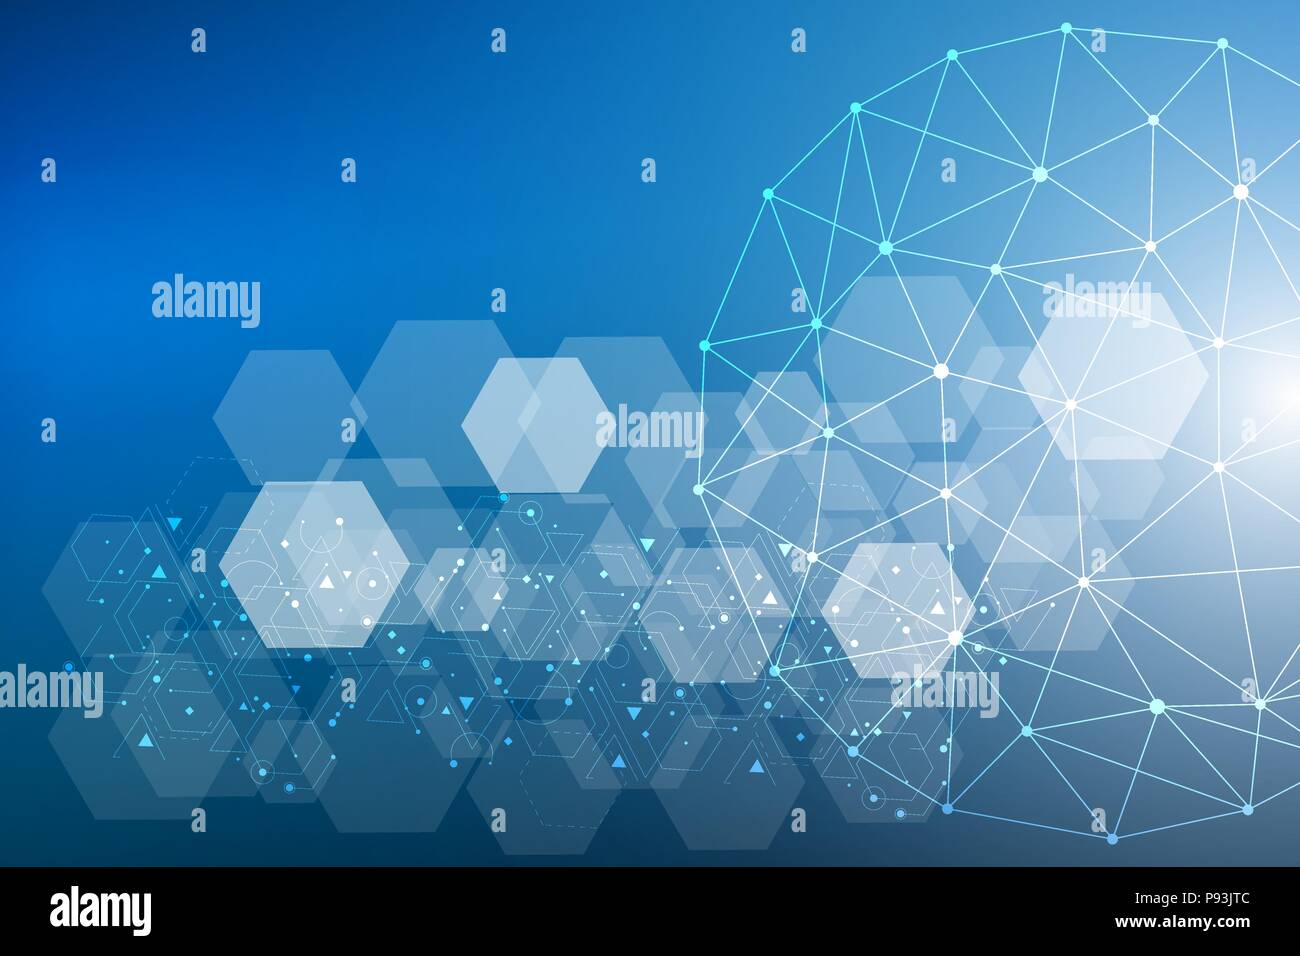 Big Data Visualization Background. Modern futuristic virtual abstract background. Science network pattern, connecting lines and dots. Global network connection vector. - Stock Image